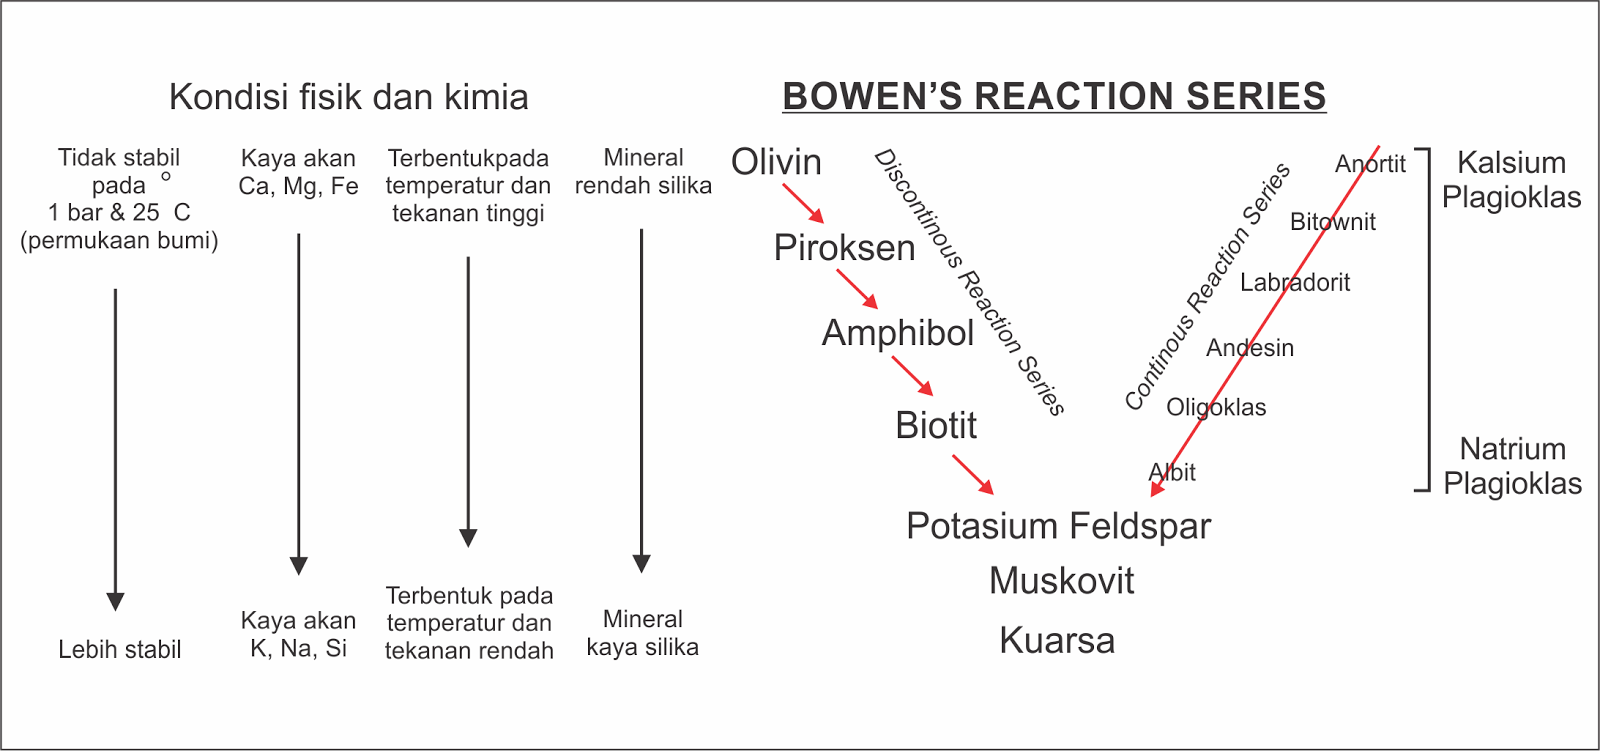 hight resolution of bowen s reaction series diagram 1